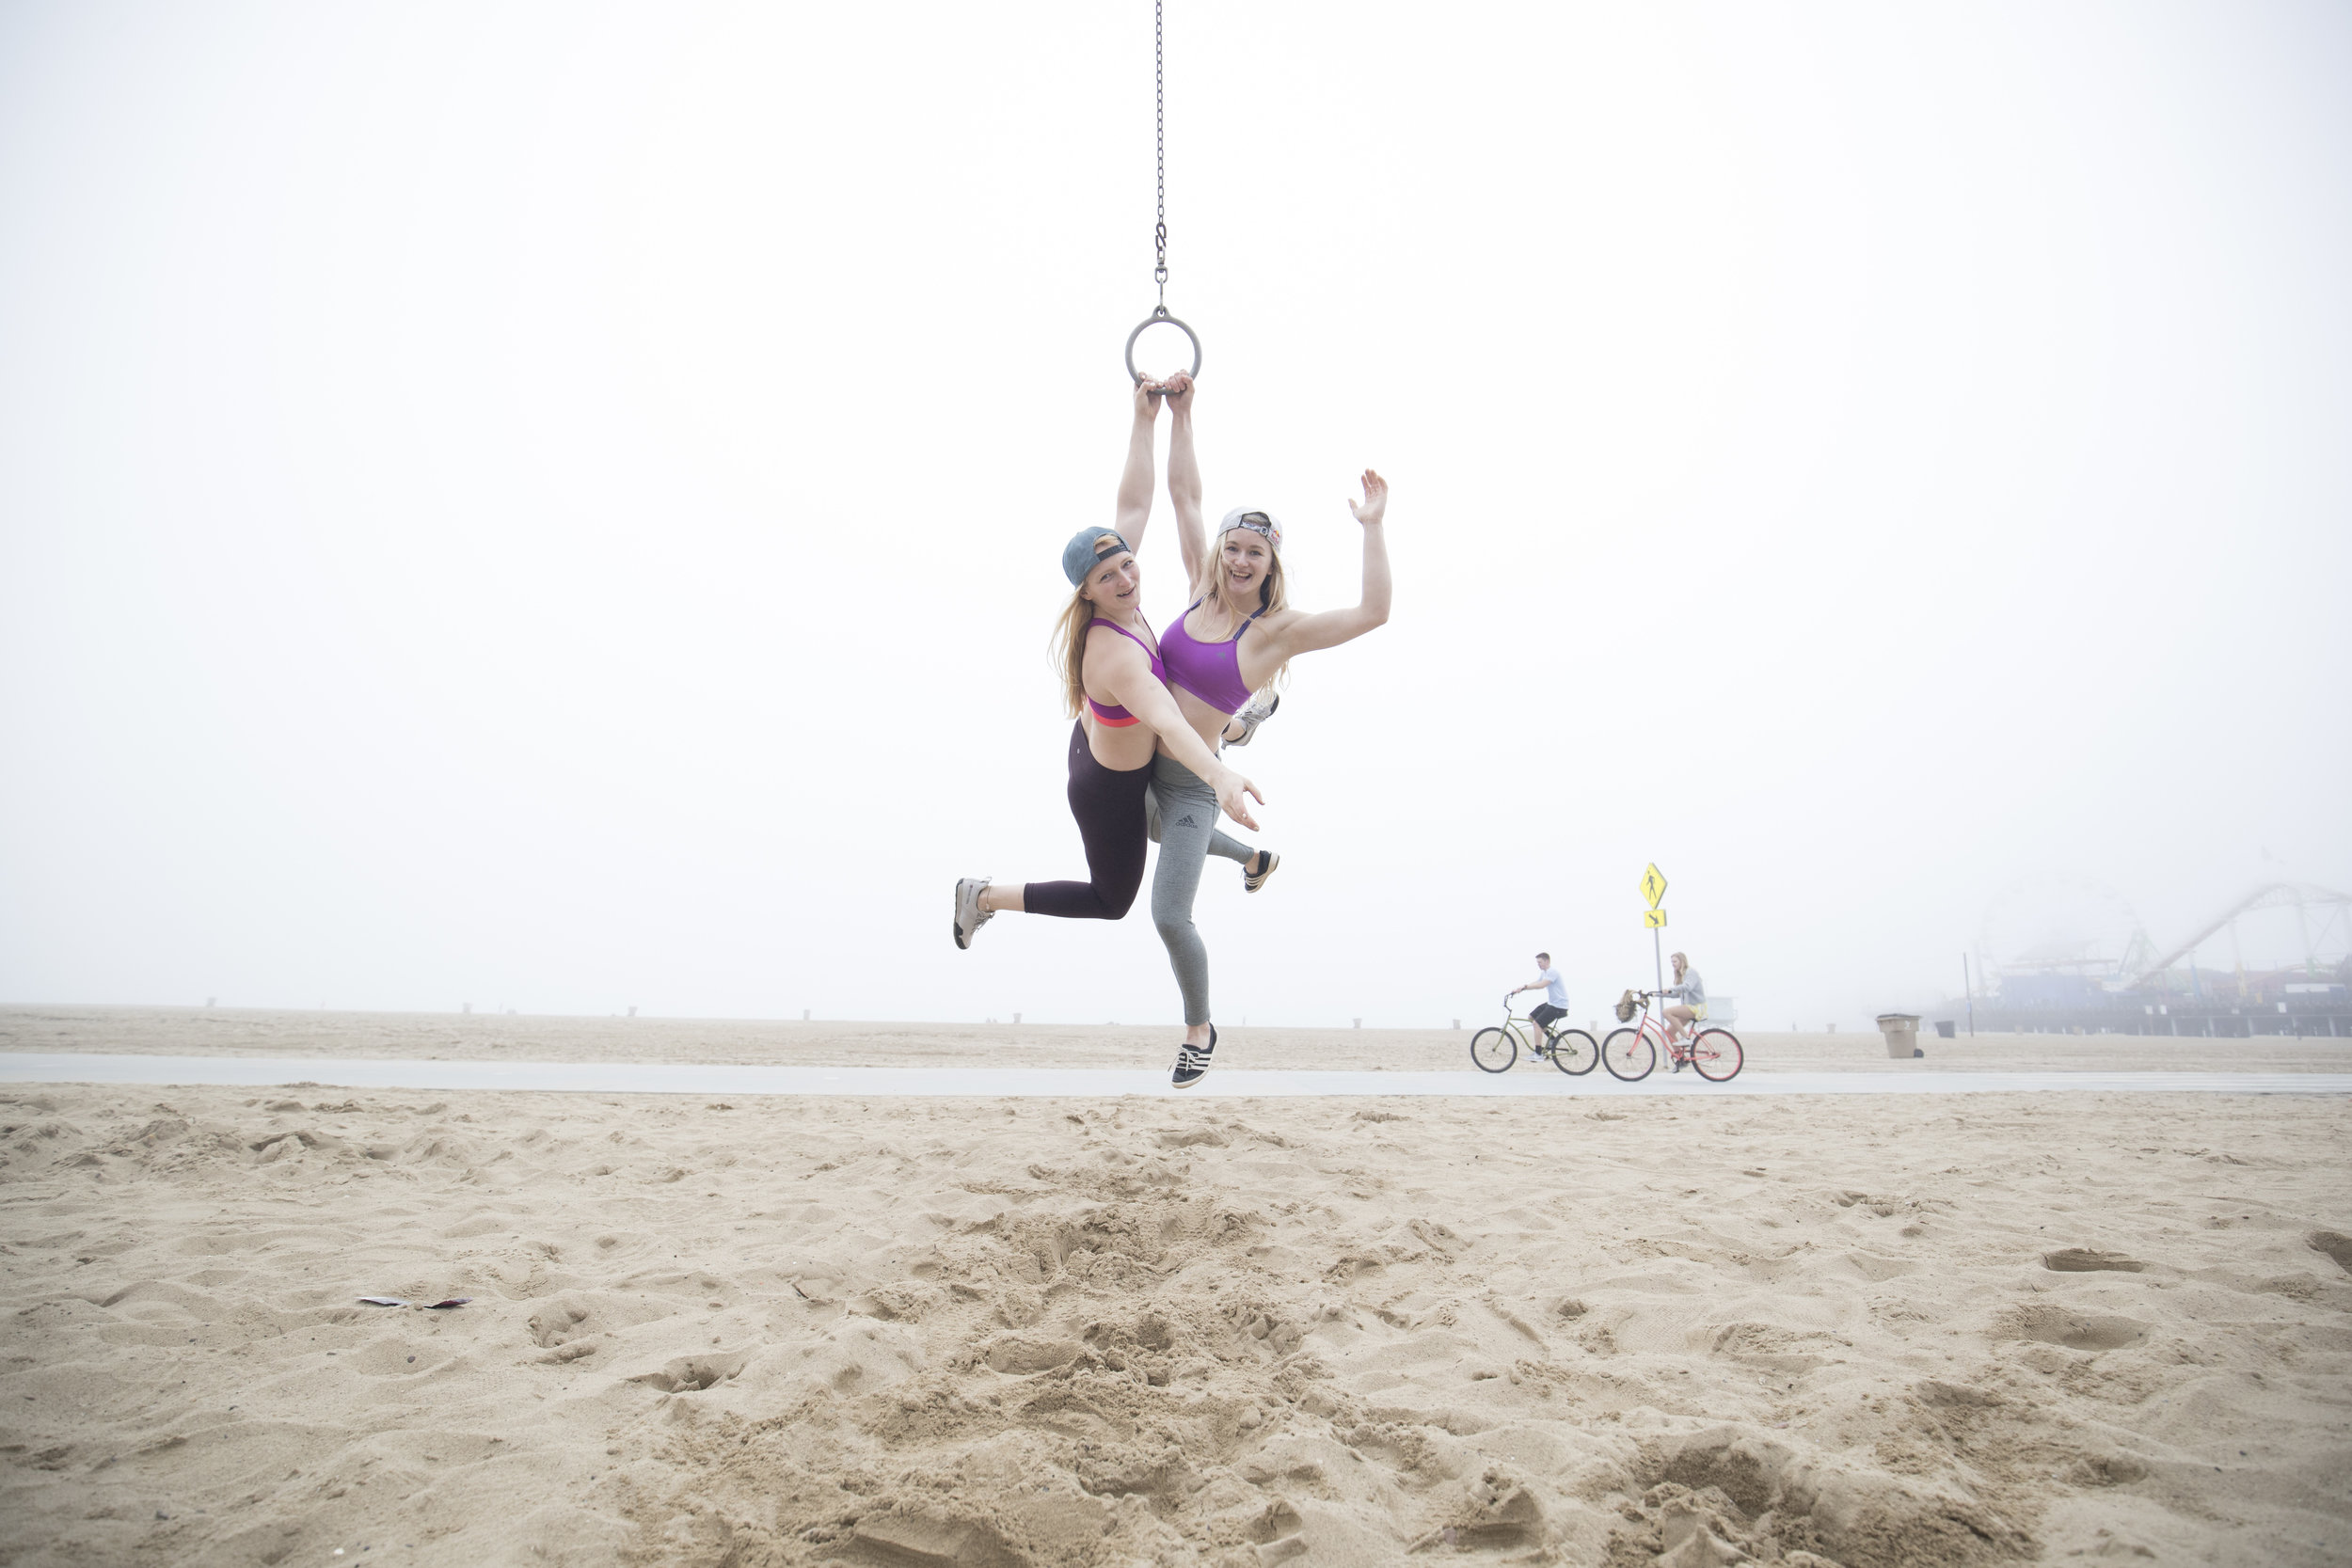 Having fun at Muscle Beach, LA. pic:   BEARCAM MEDIA